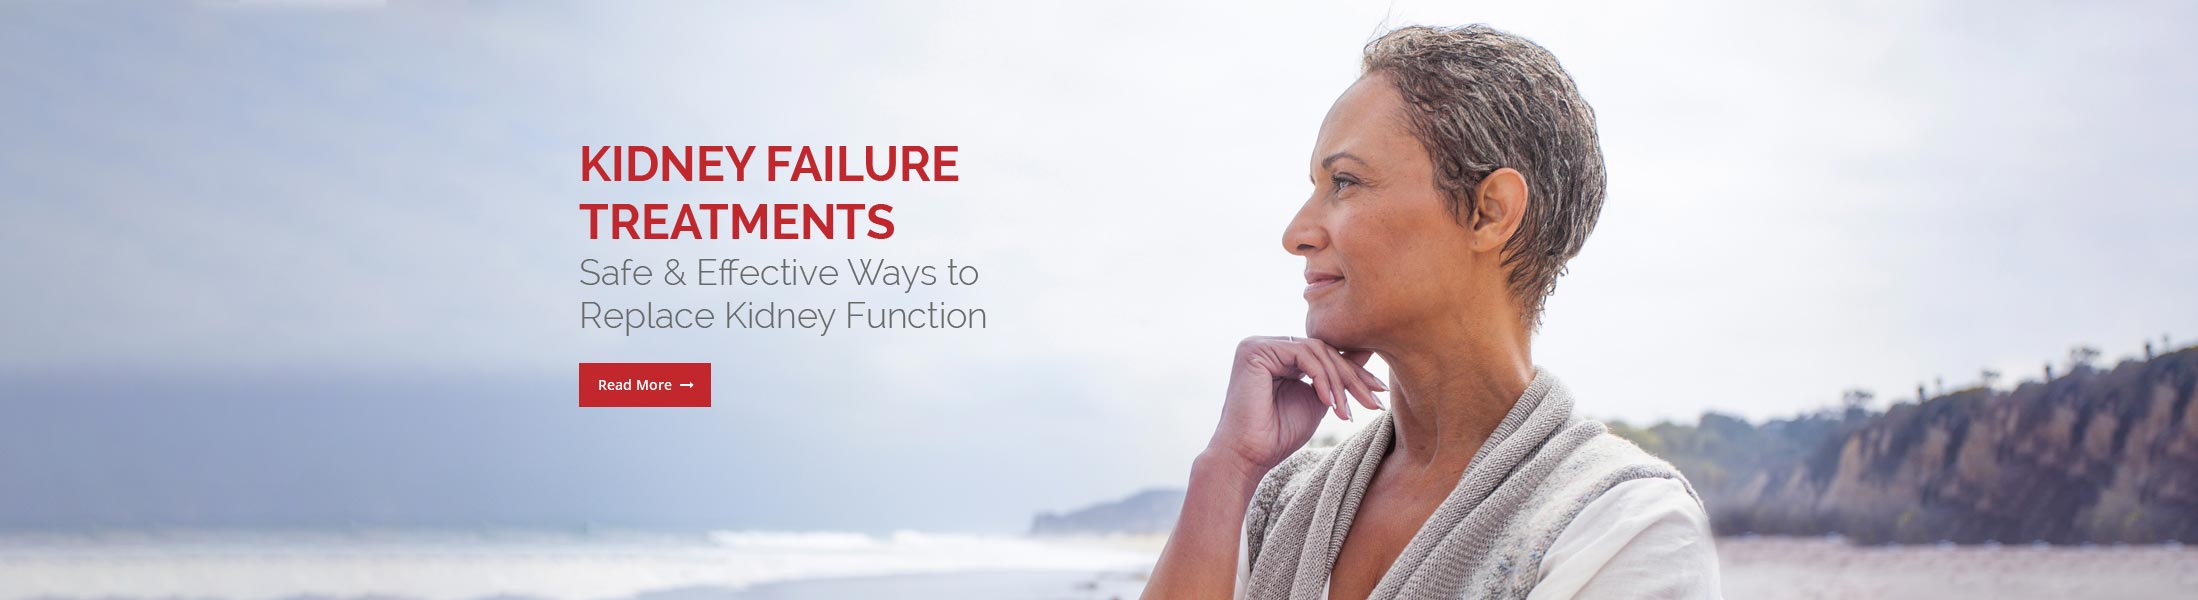 Kidney Failure Treatment Hawaii